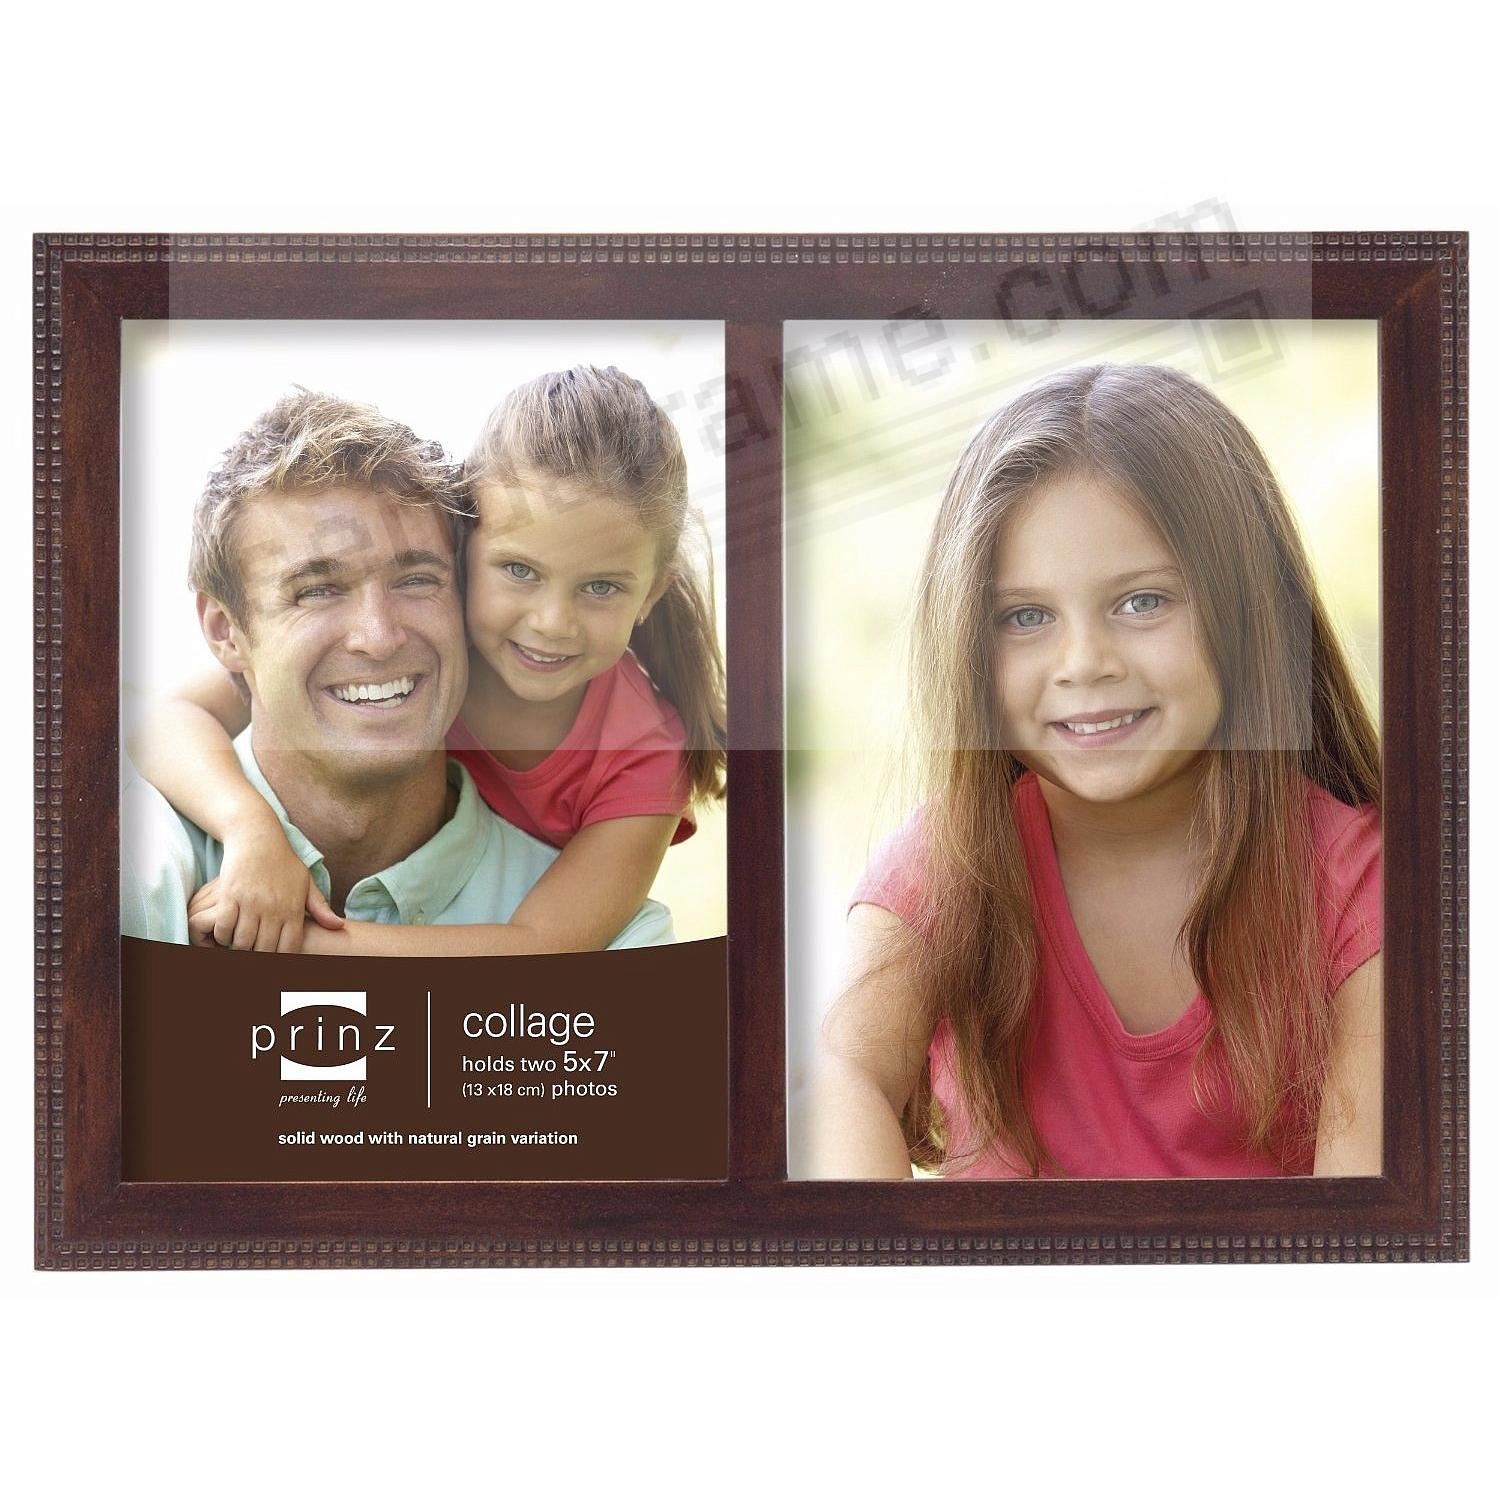 sonoma espresso patterned double 5x7 frame by prinz picture frames photo albums personalized and engraved digital photo gifts sendaframe - Double 5x7 Picture Frame